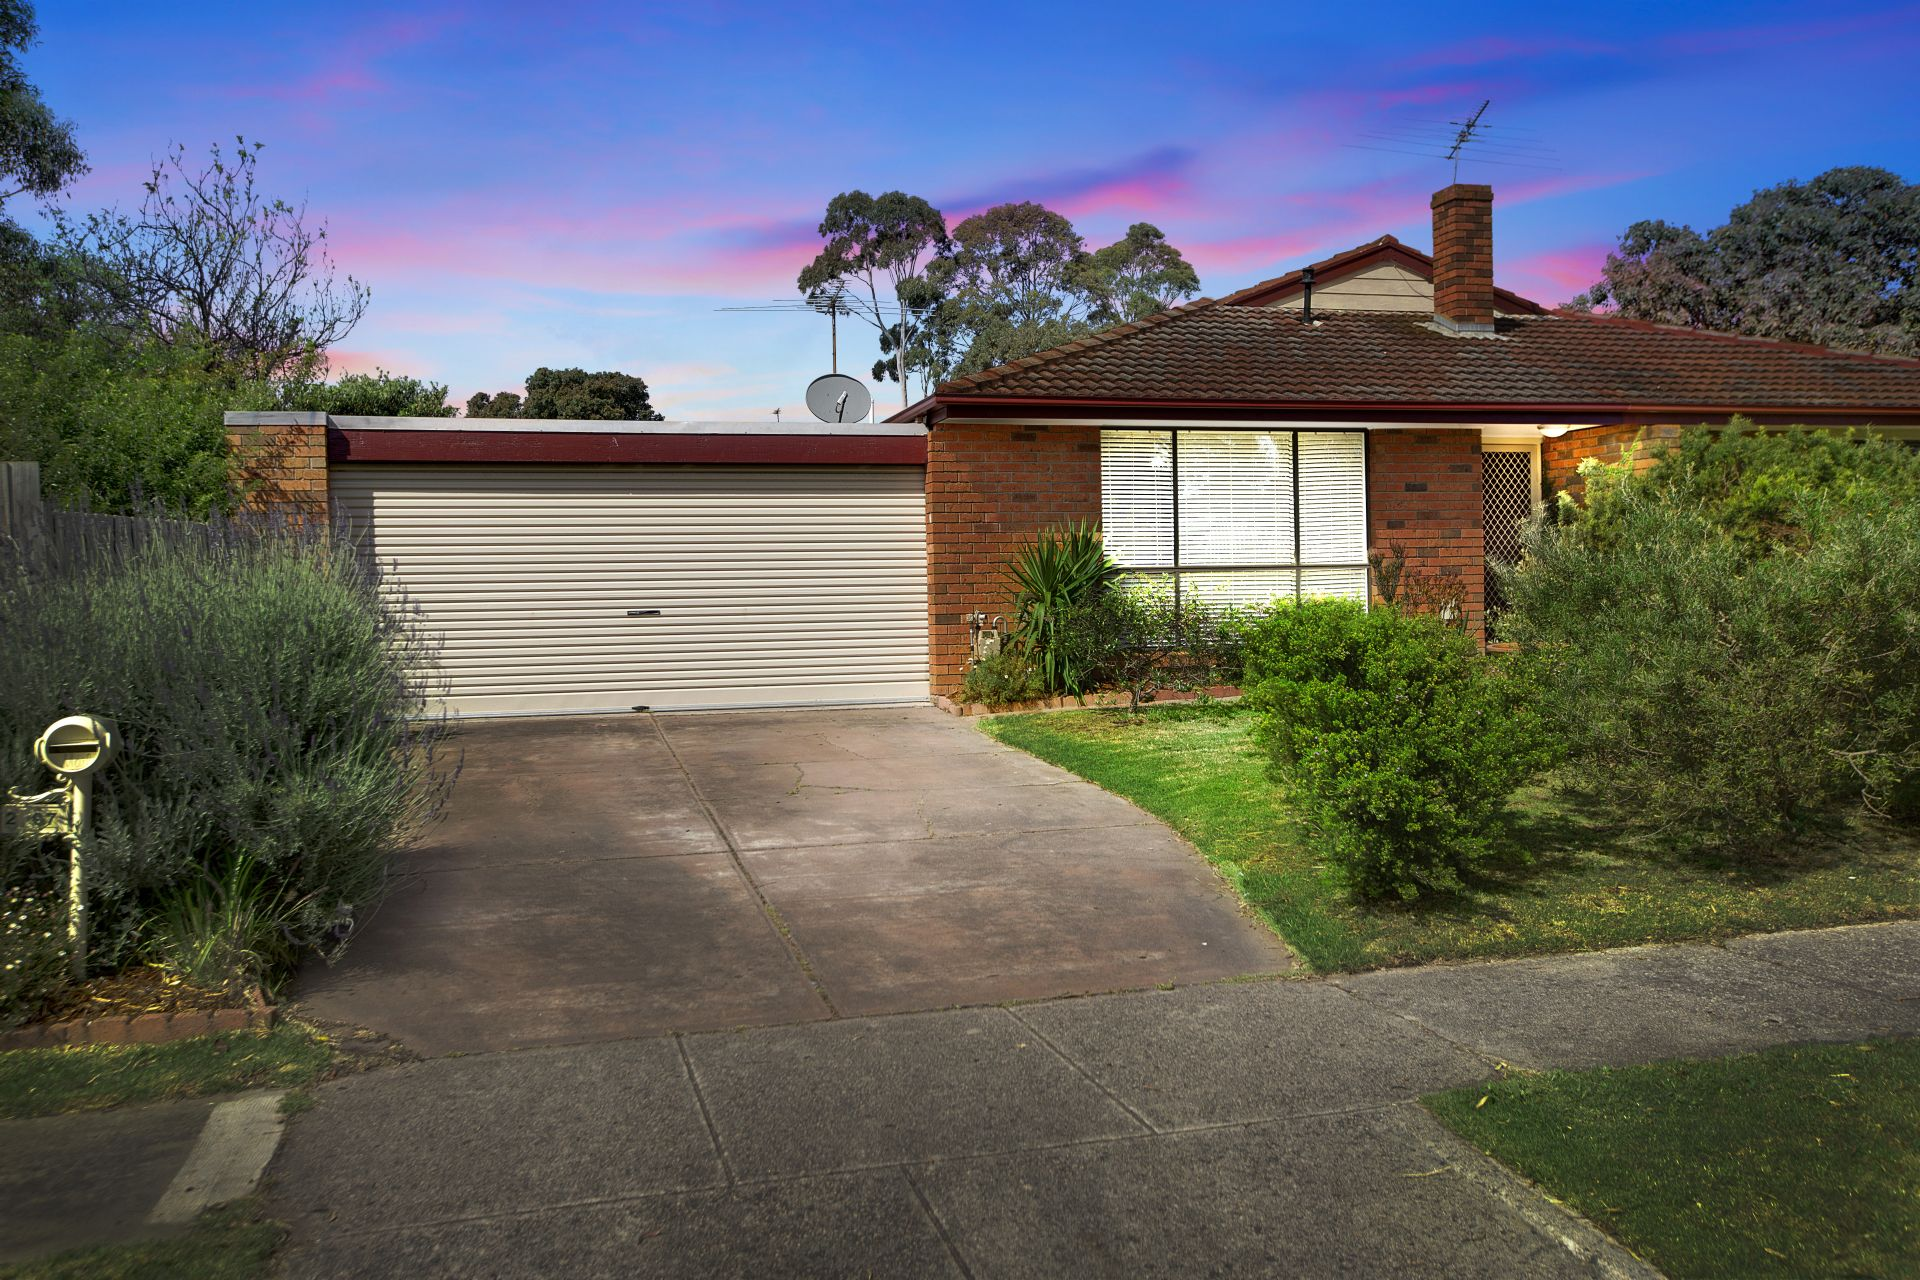 2/97 Dunsterville Crescent, FRANKSTON, VIC, 3199 - Image